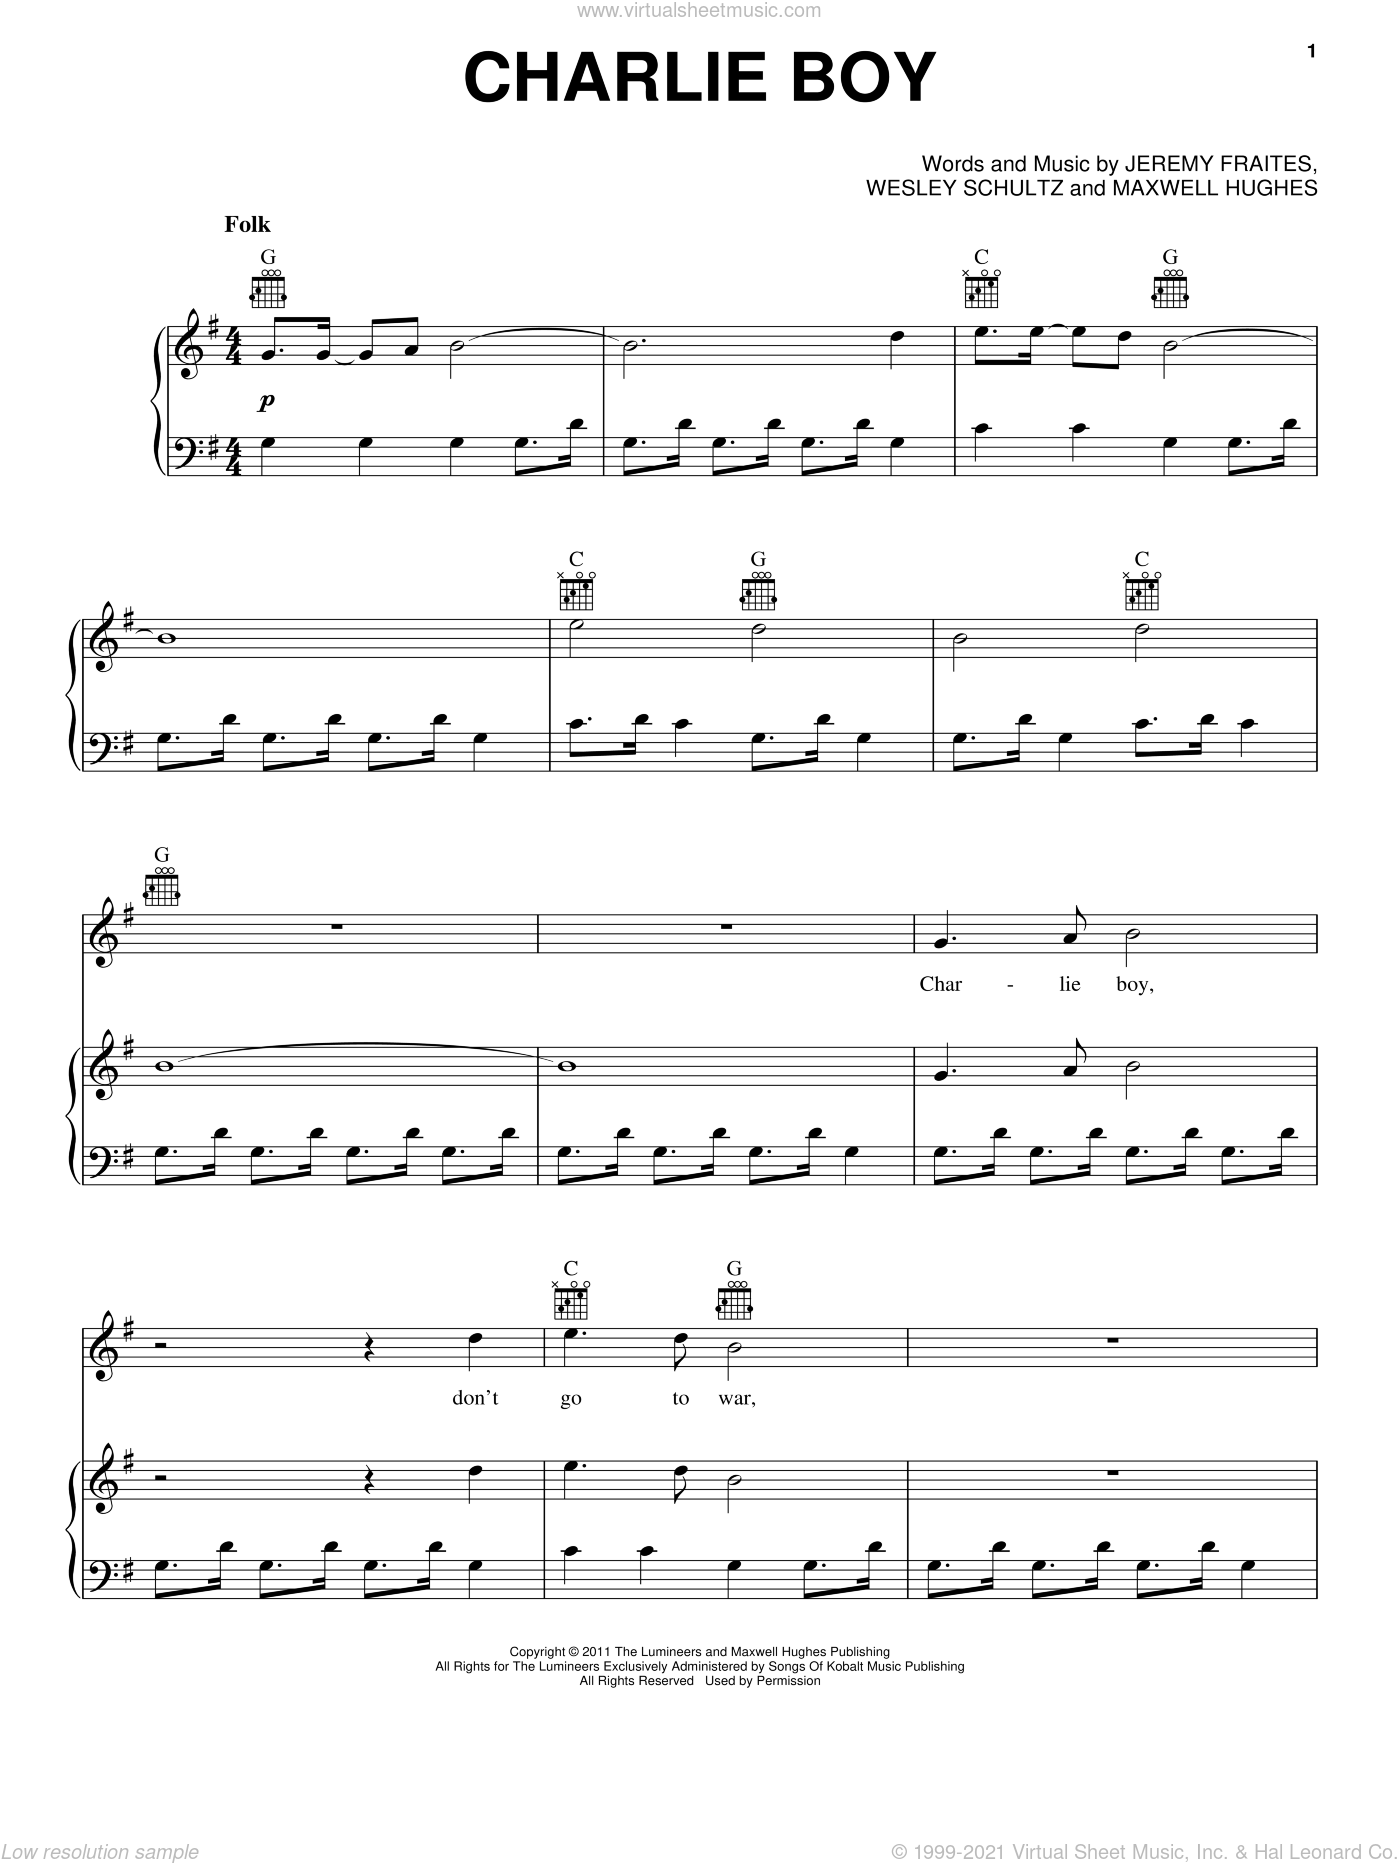 Charlie Boy sheet music for voice, piano or guitar by Wesley Schultz, Jeremy Fraites and The Lumineers. Score Image Preview.